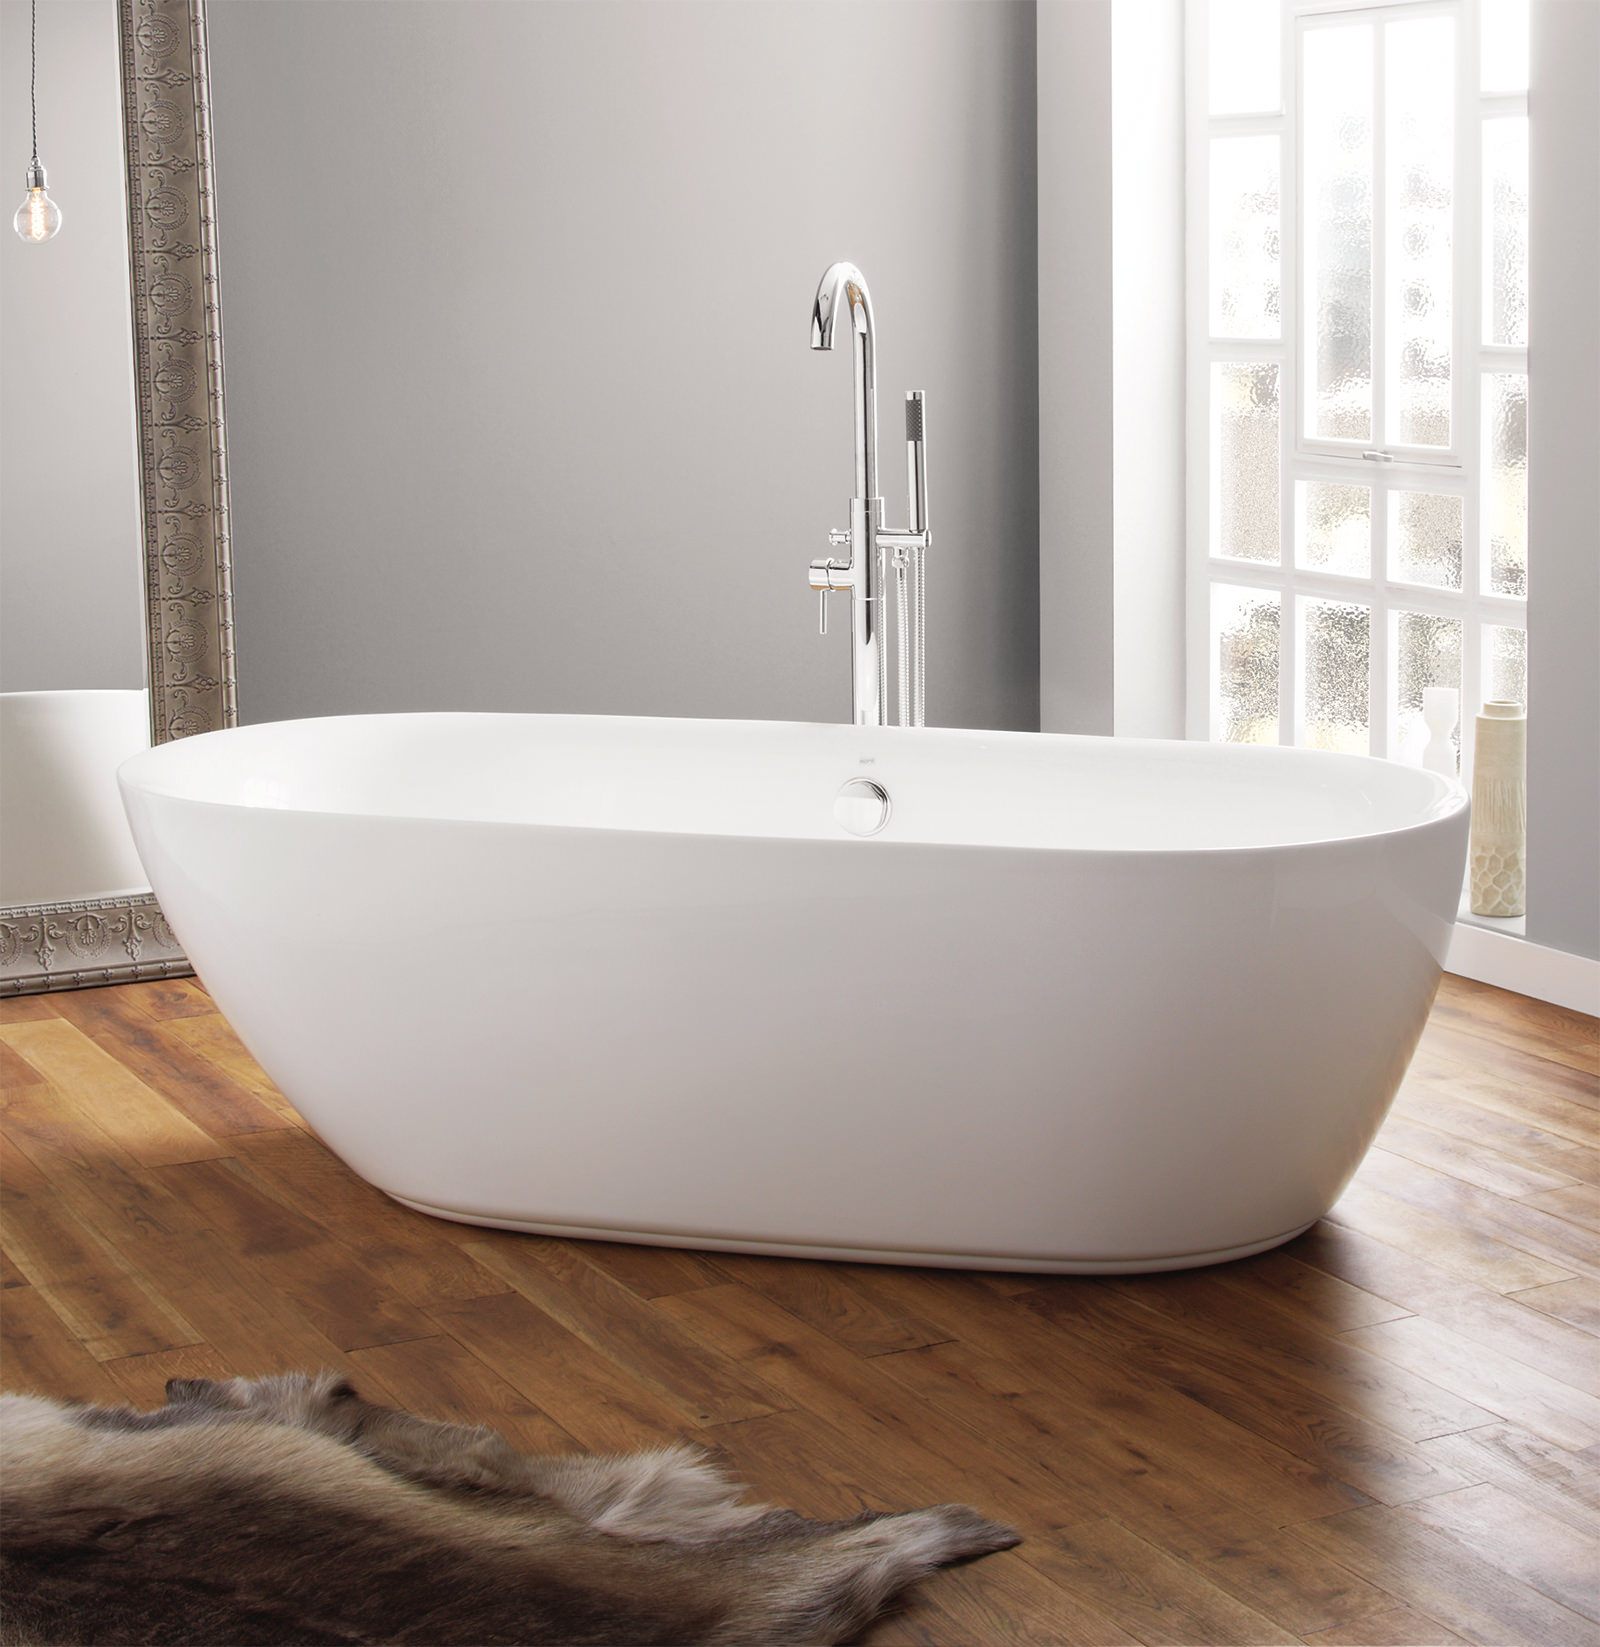 April cayton 1800 x 840mm contemporary freestanding bath for Bath 1800